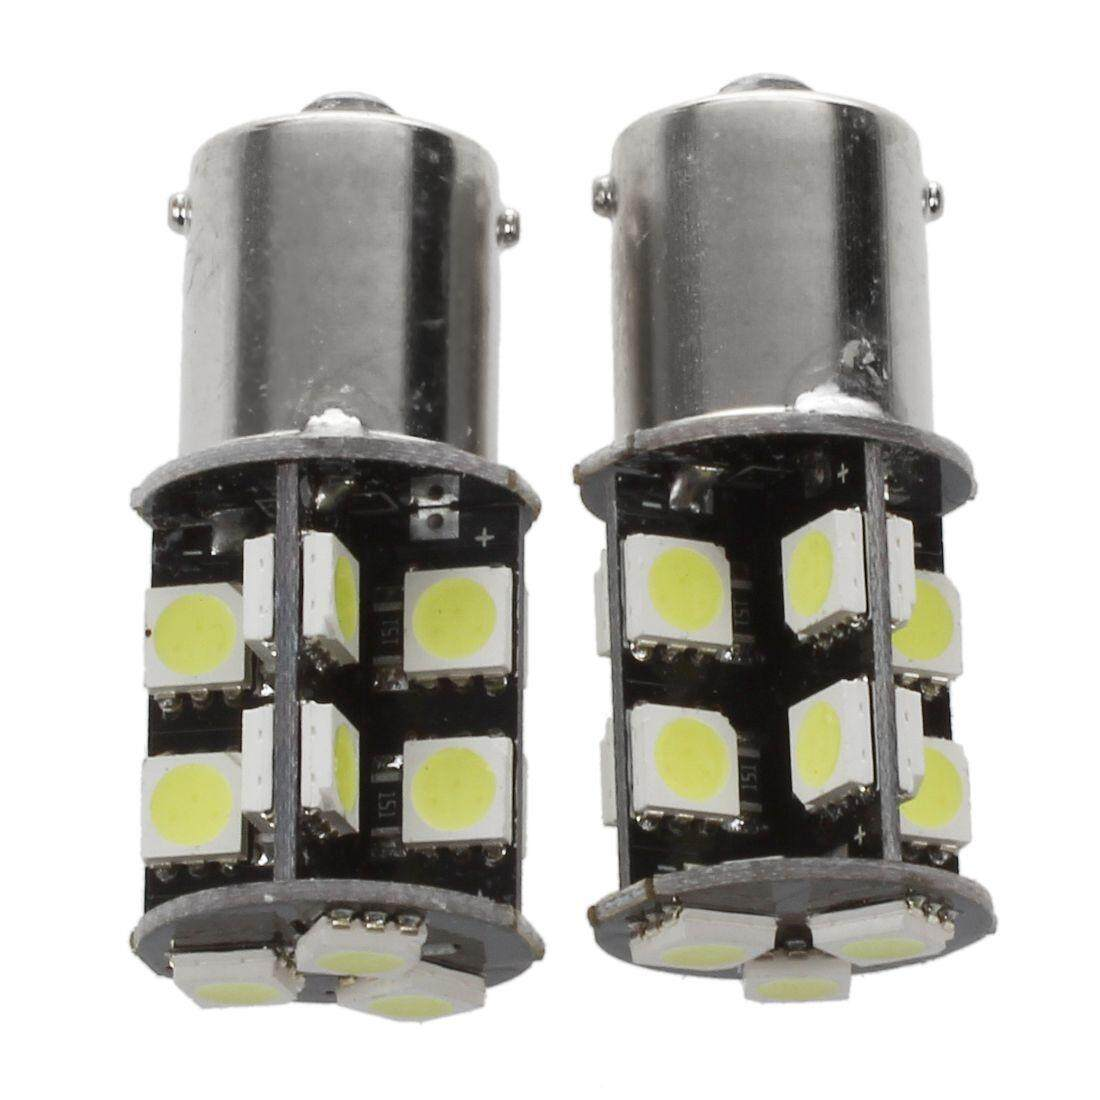 2x Auto Lamp Bulb BA15s P21W 1156 19 5050 SMD LED Canbus Error DC 12V